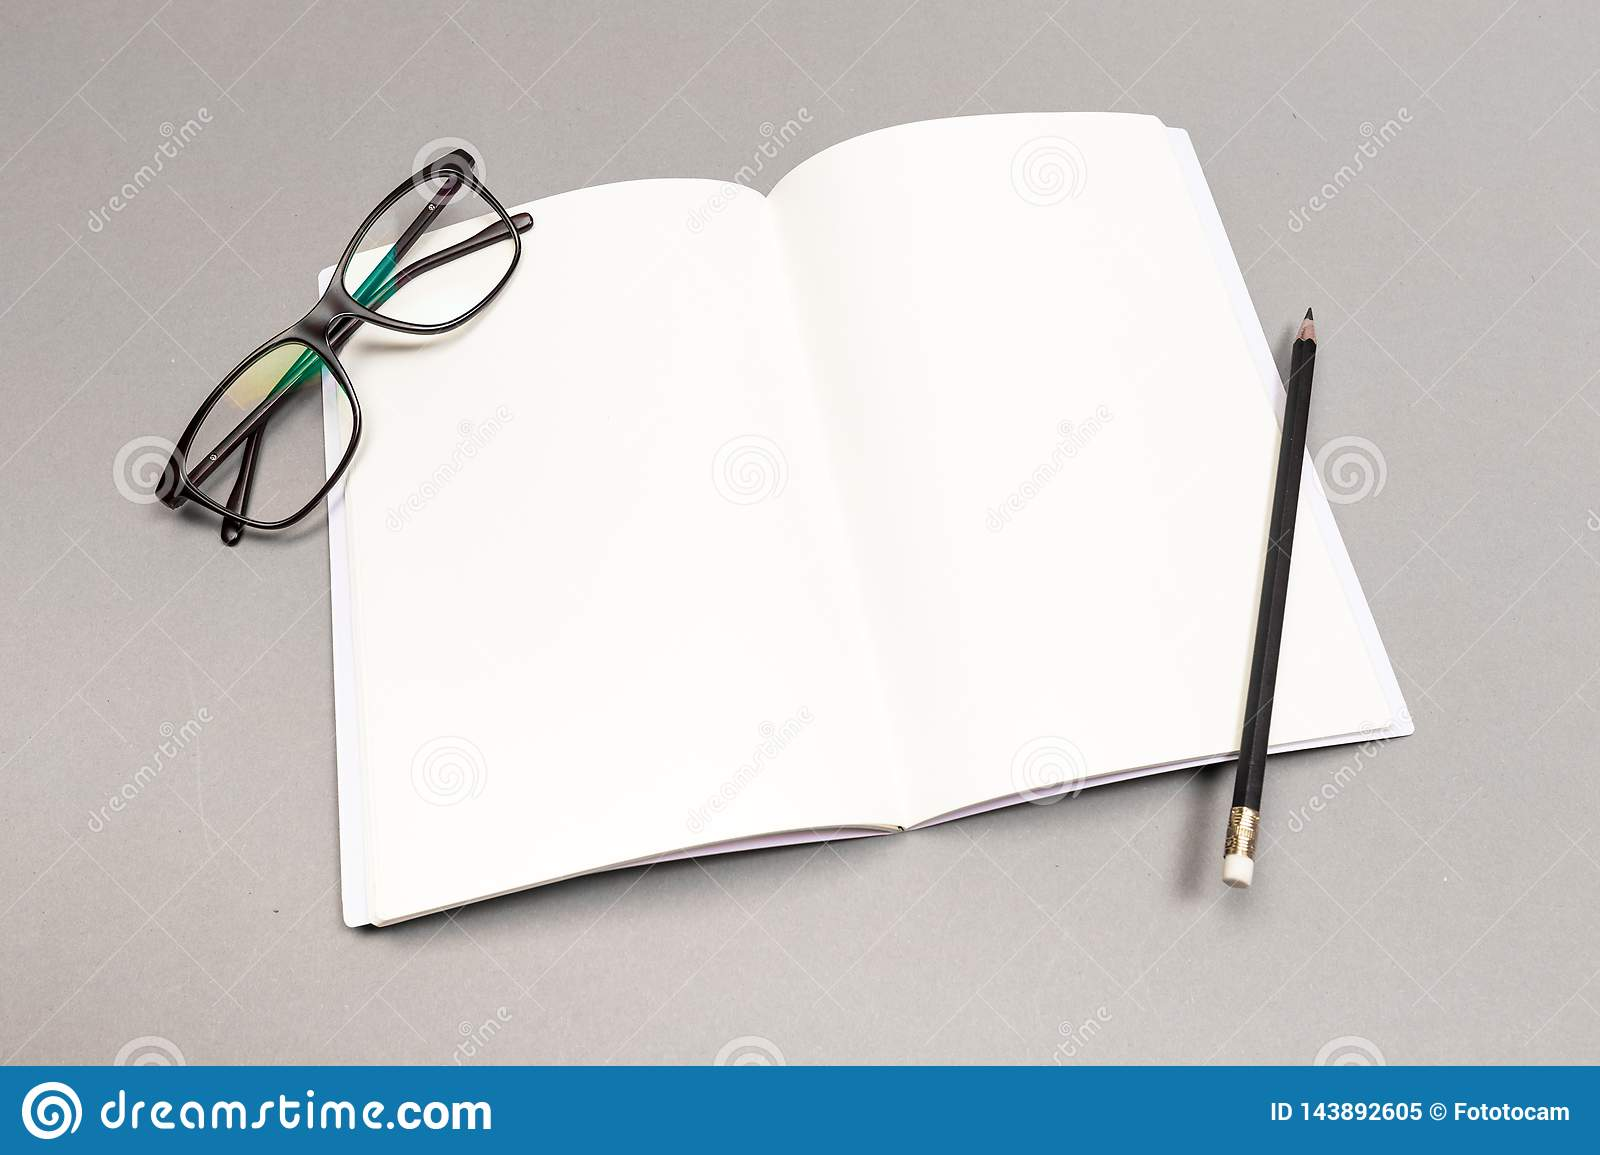 Blank Hard Cover Of Magazine, Book, Booklet, Brochure with pencil and glasses. Mock Up Template Ready For Your Design